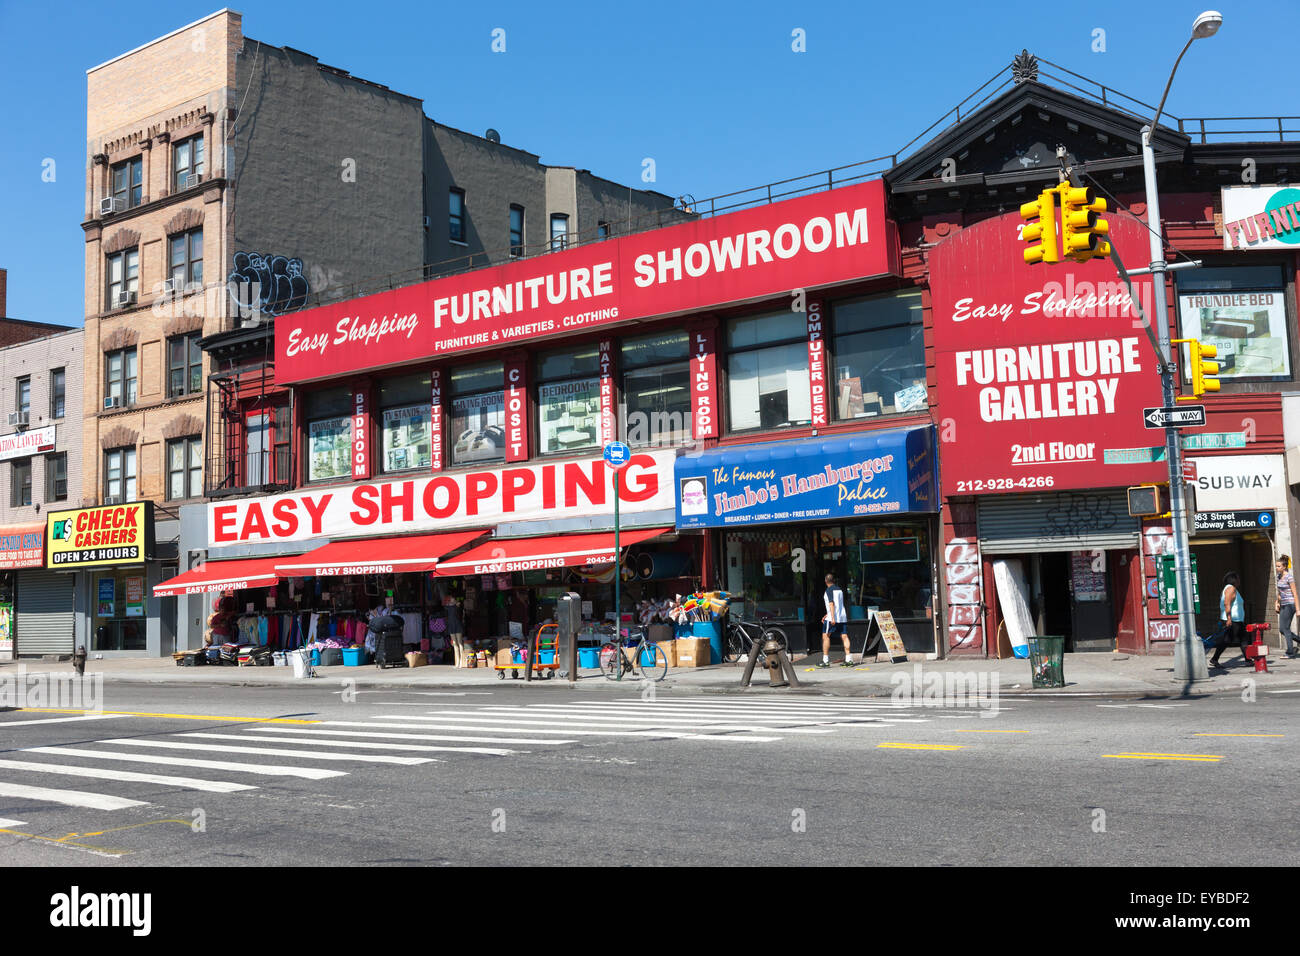 Easy Shopping Furniture Store In The Washington Heights Section Of New York  City.